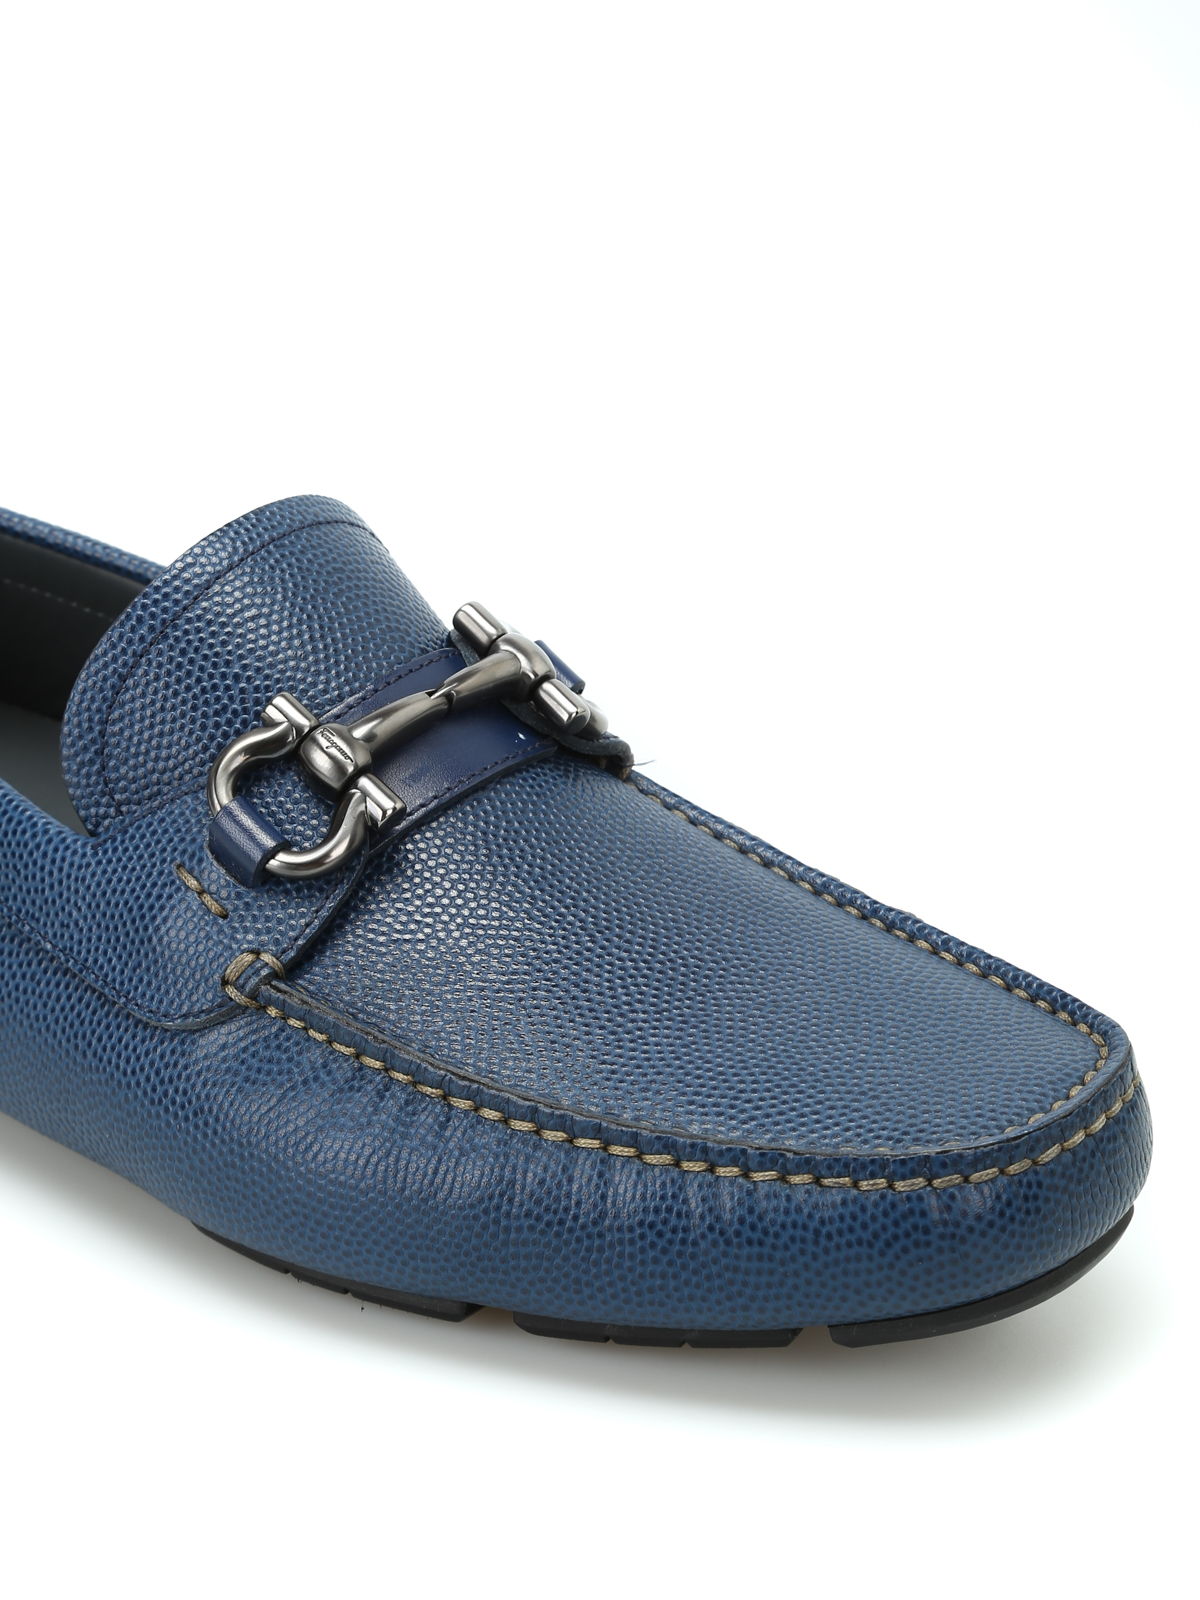 Salvatore Ferragamo Parigi Blue Leather Loafers